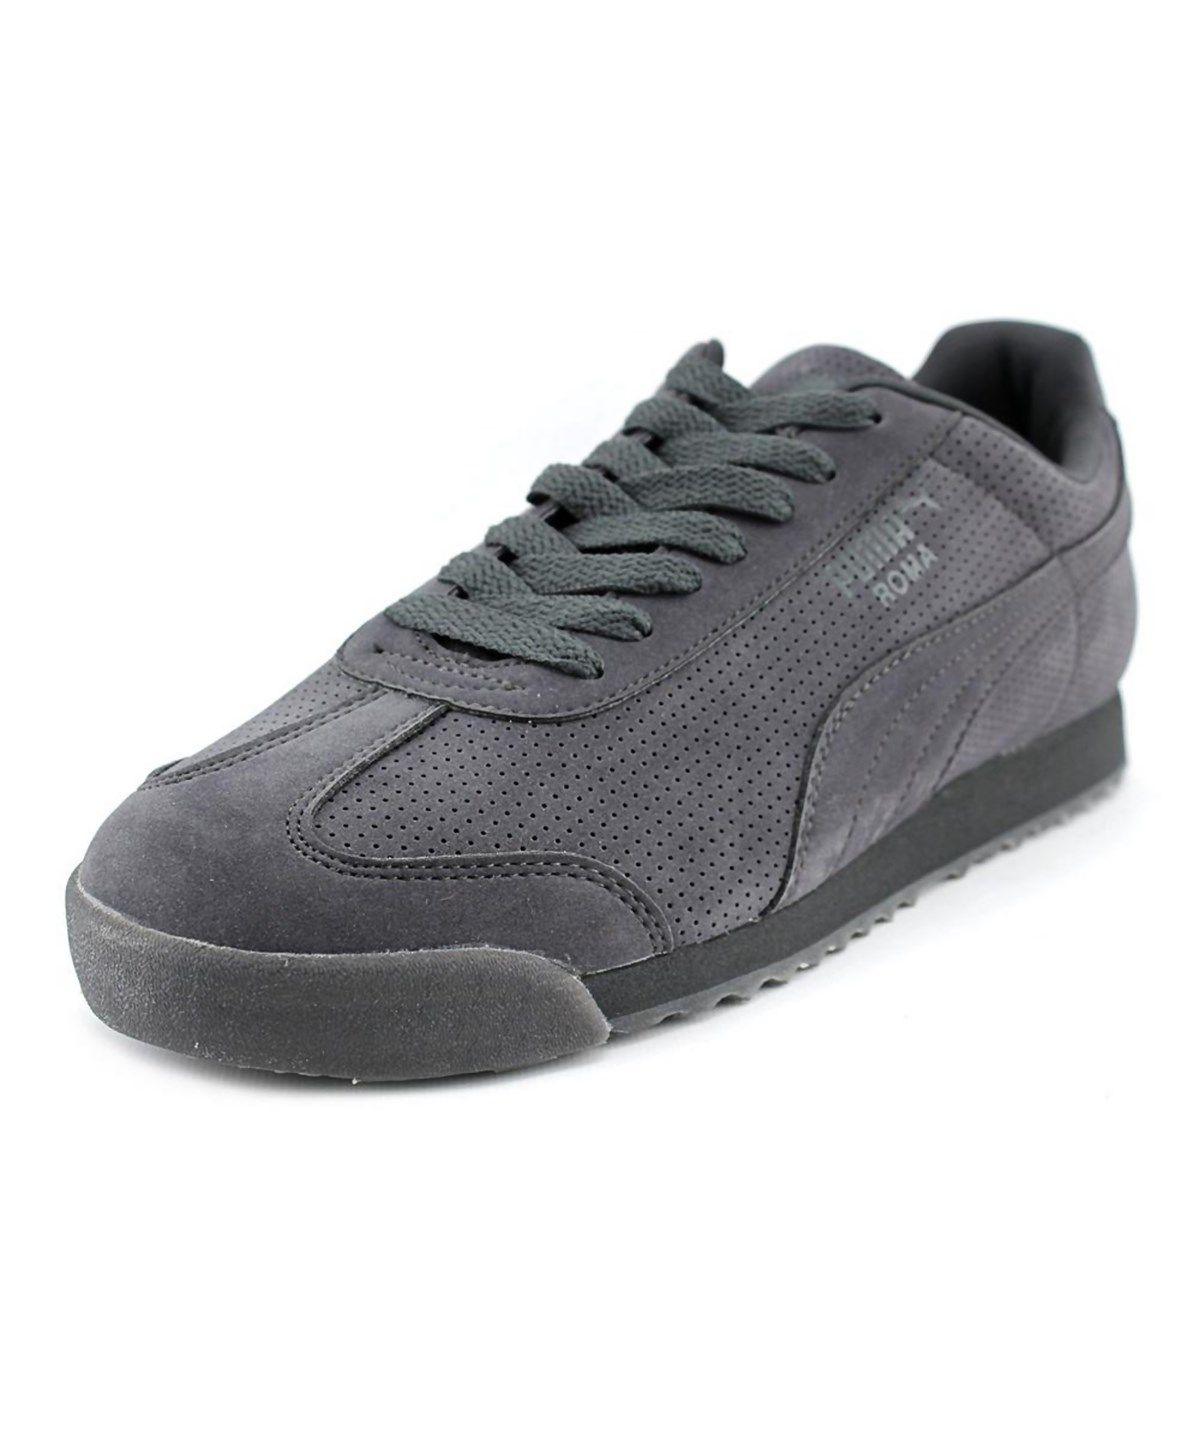 mens puma roma suede athletic shoe